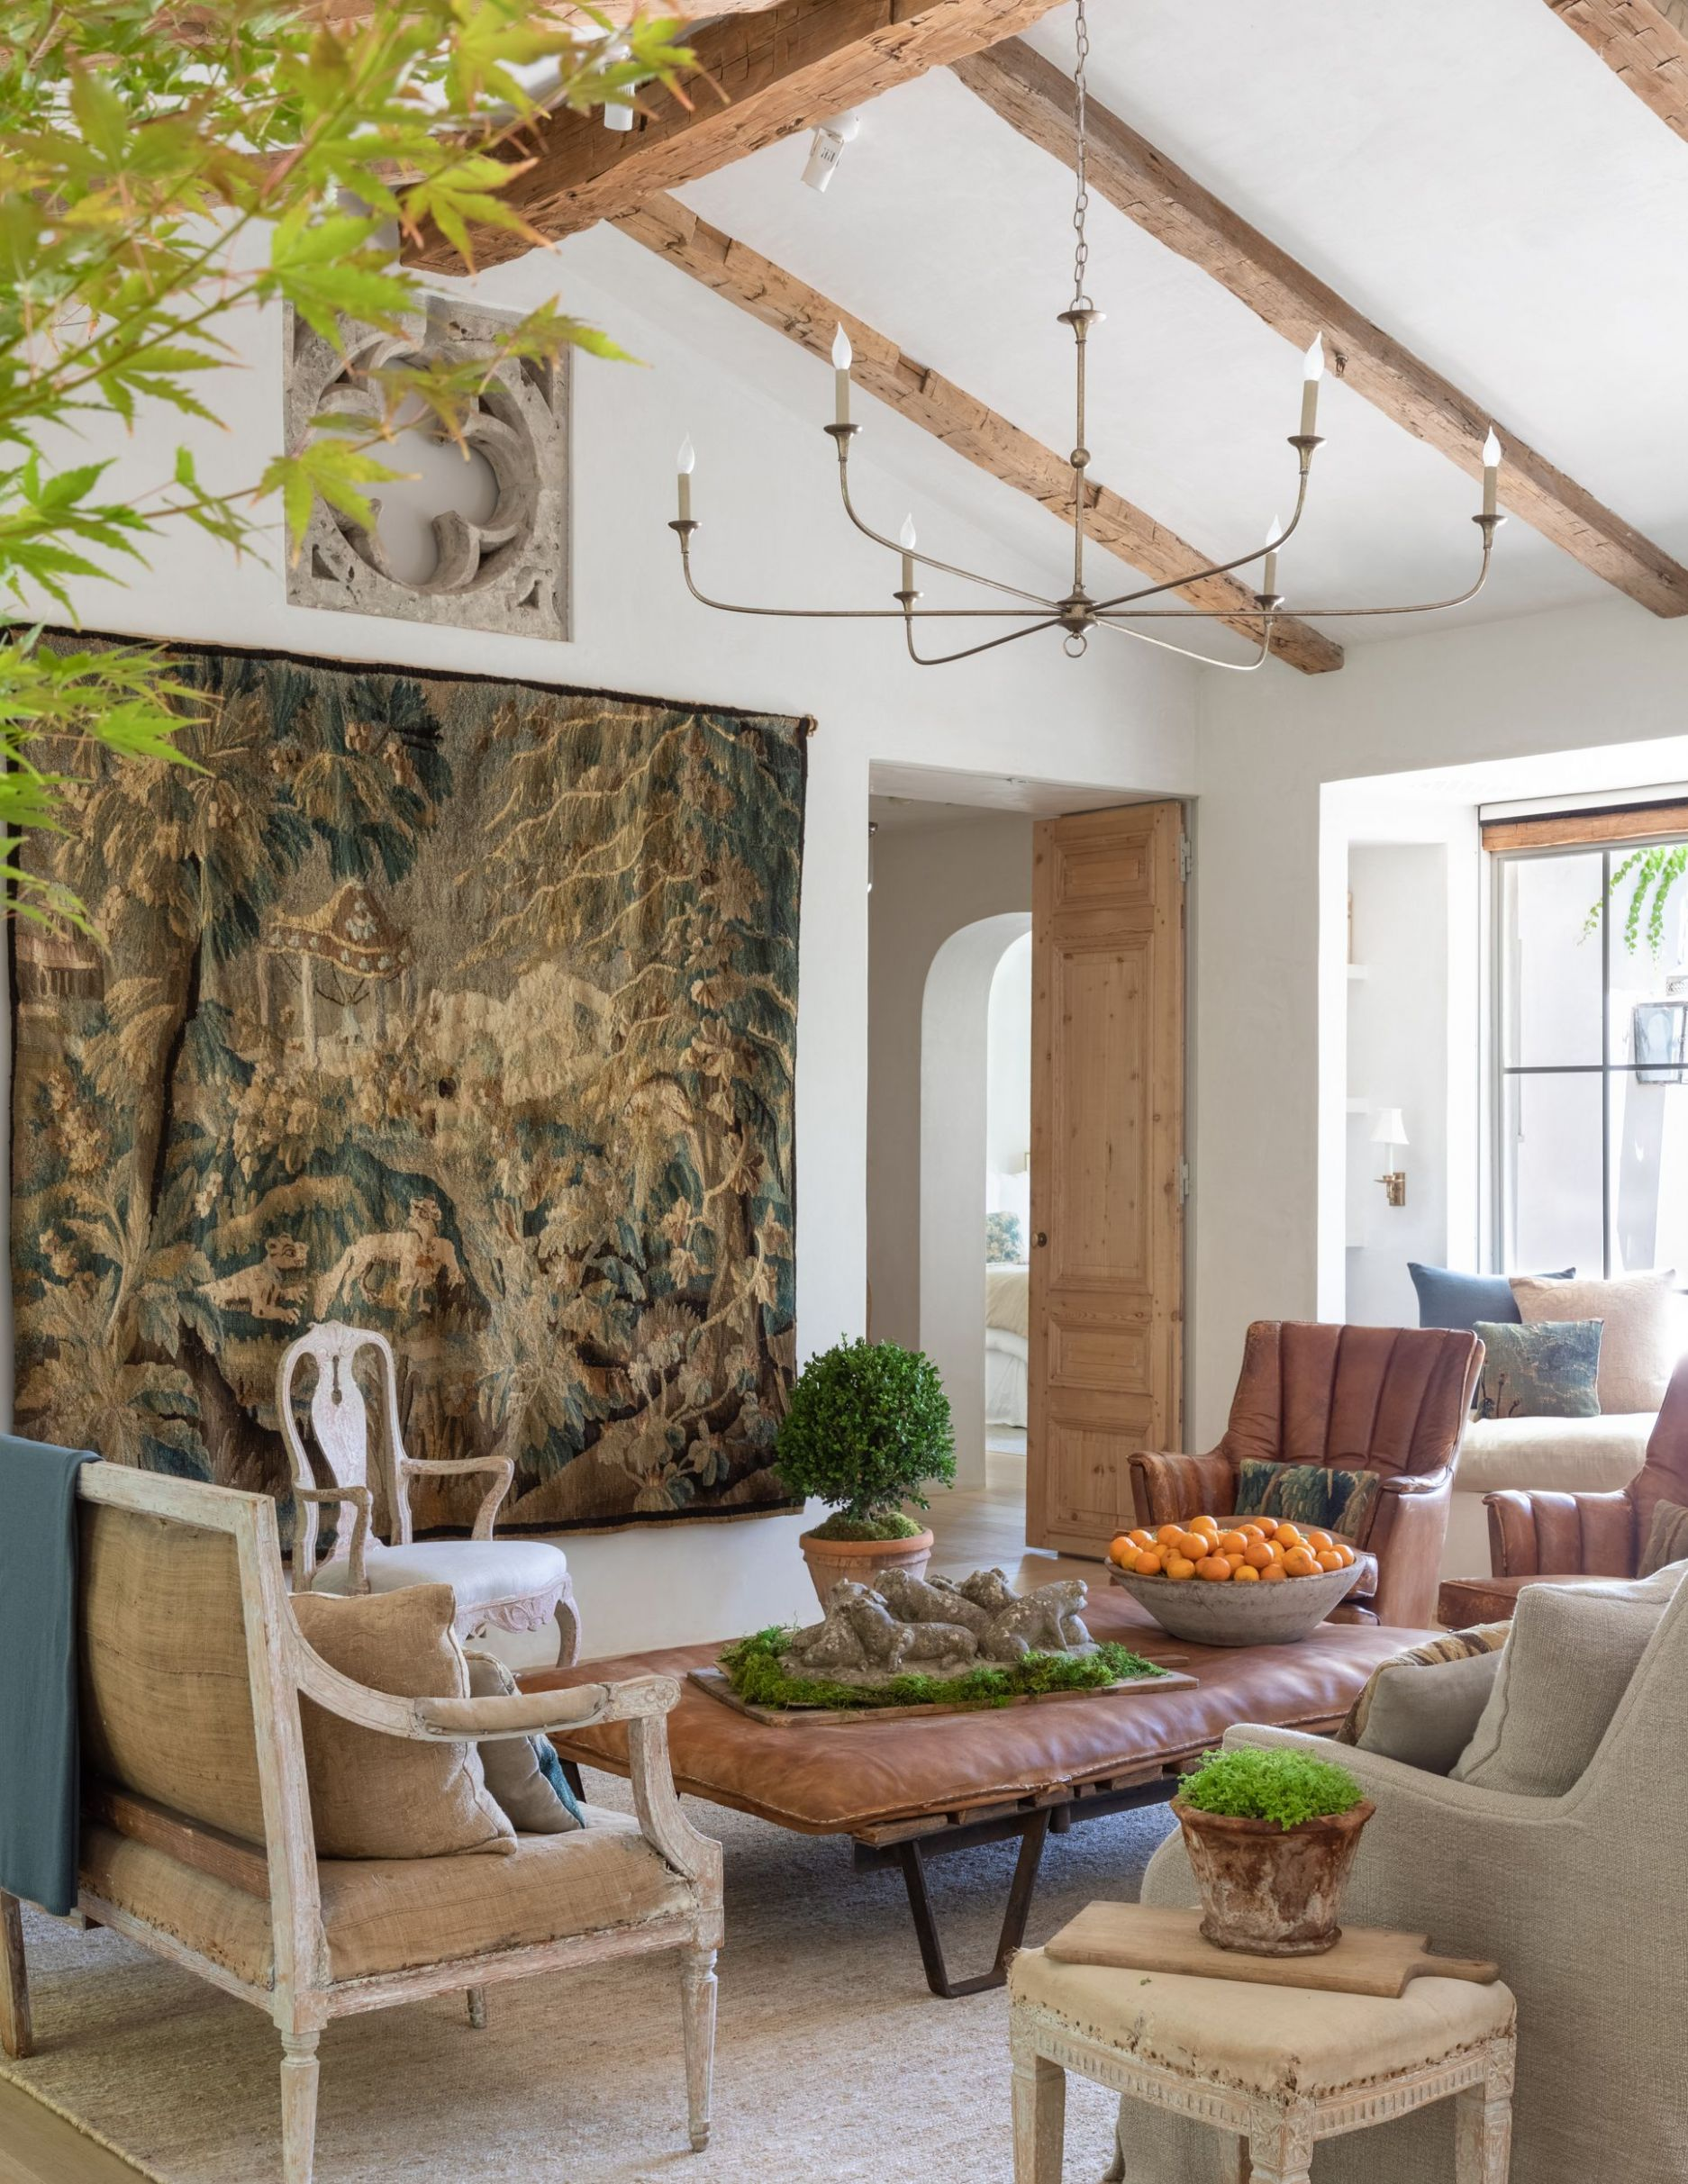 The Design Trends That Are IN and OUT in 10 - What Decorating ..